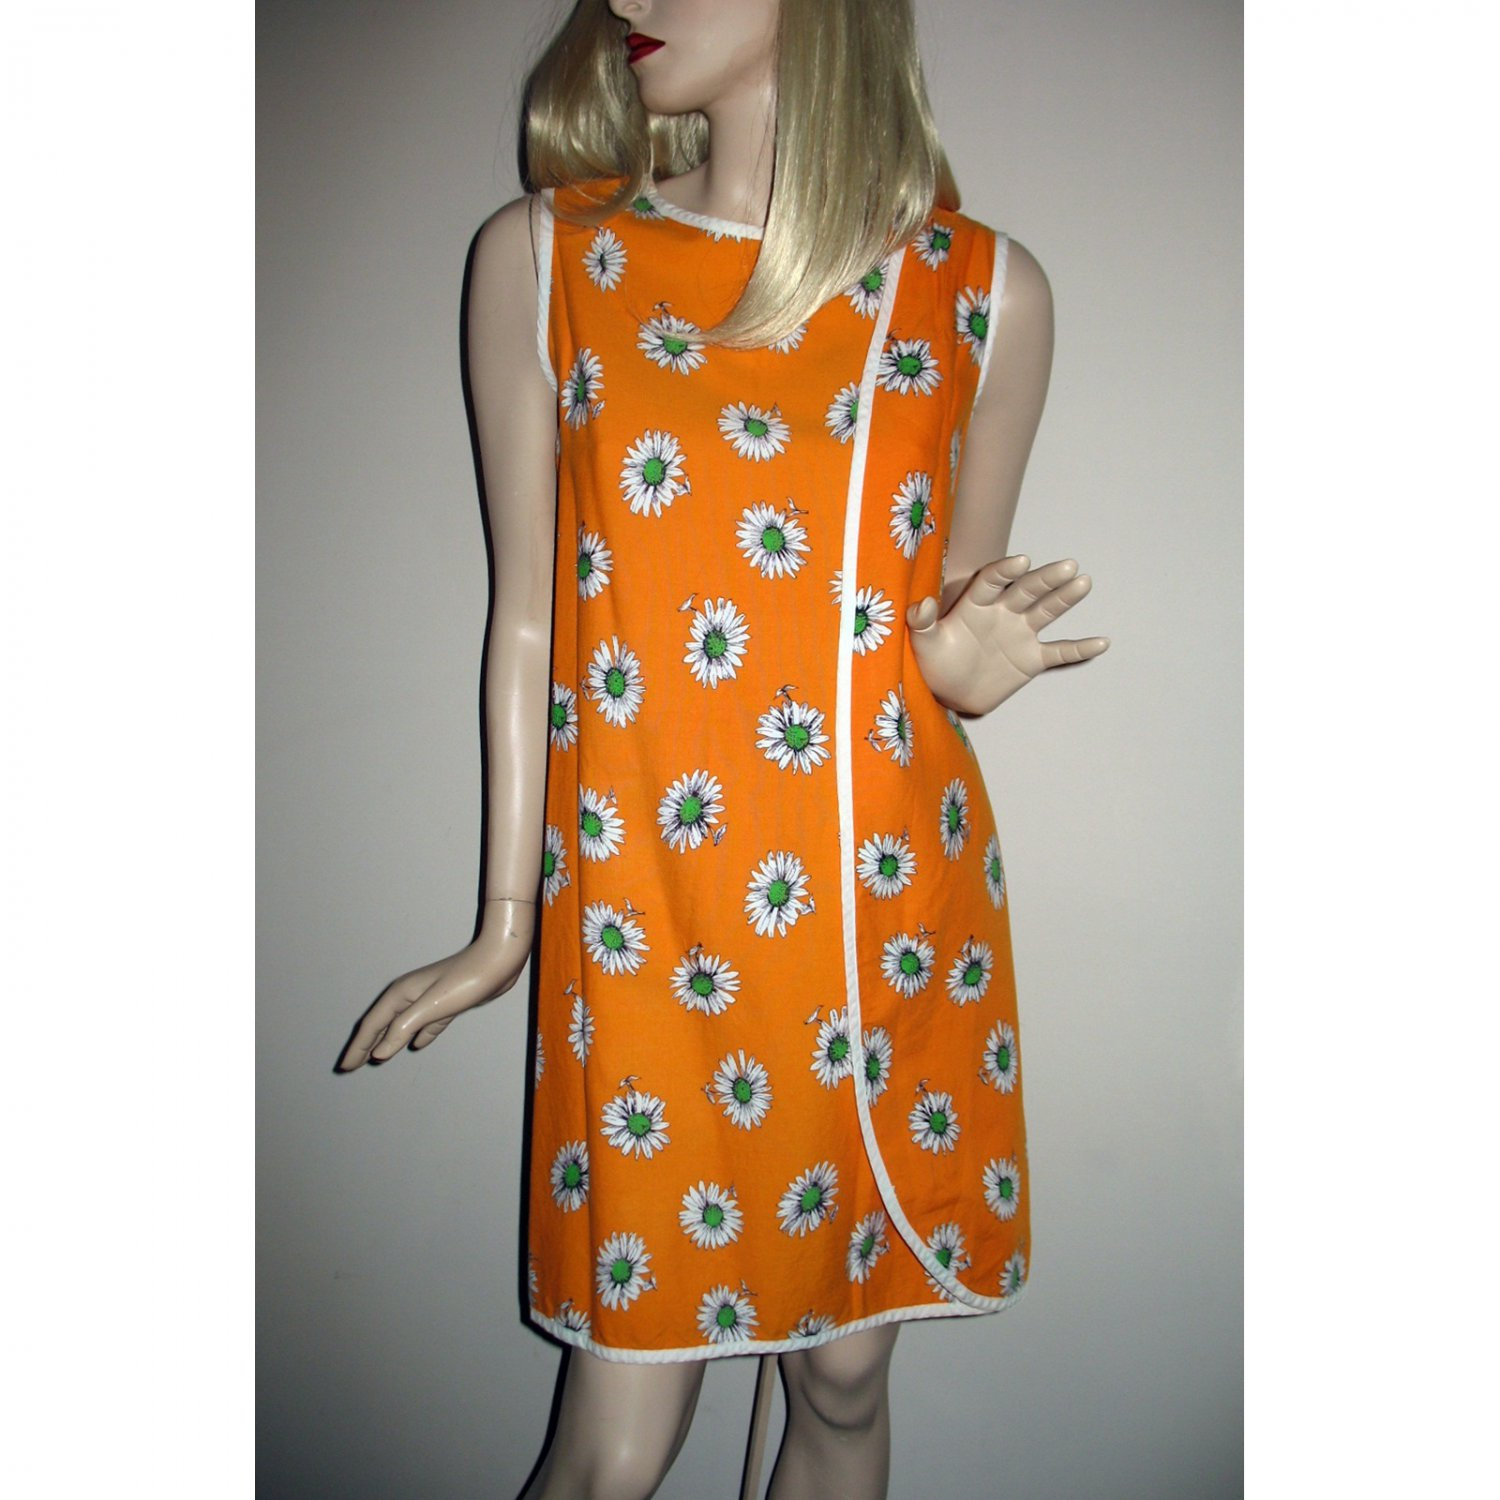 Authentic Vintage 1960s Three Armhole Wrap Around Mod Mini Dress S/M